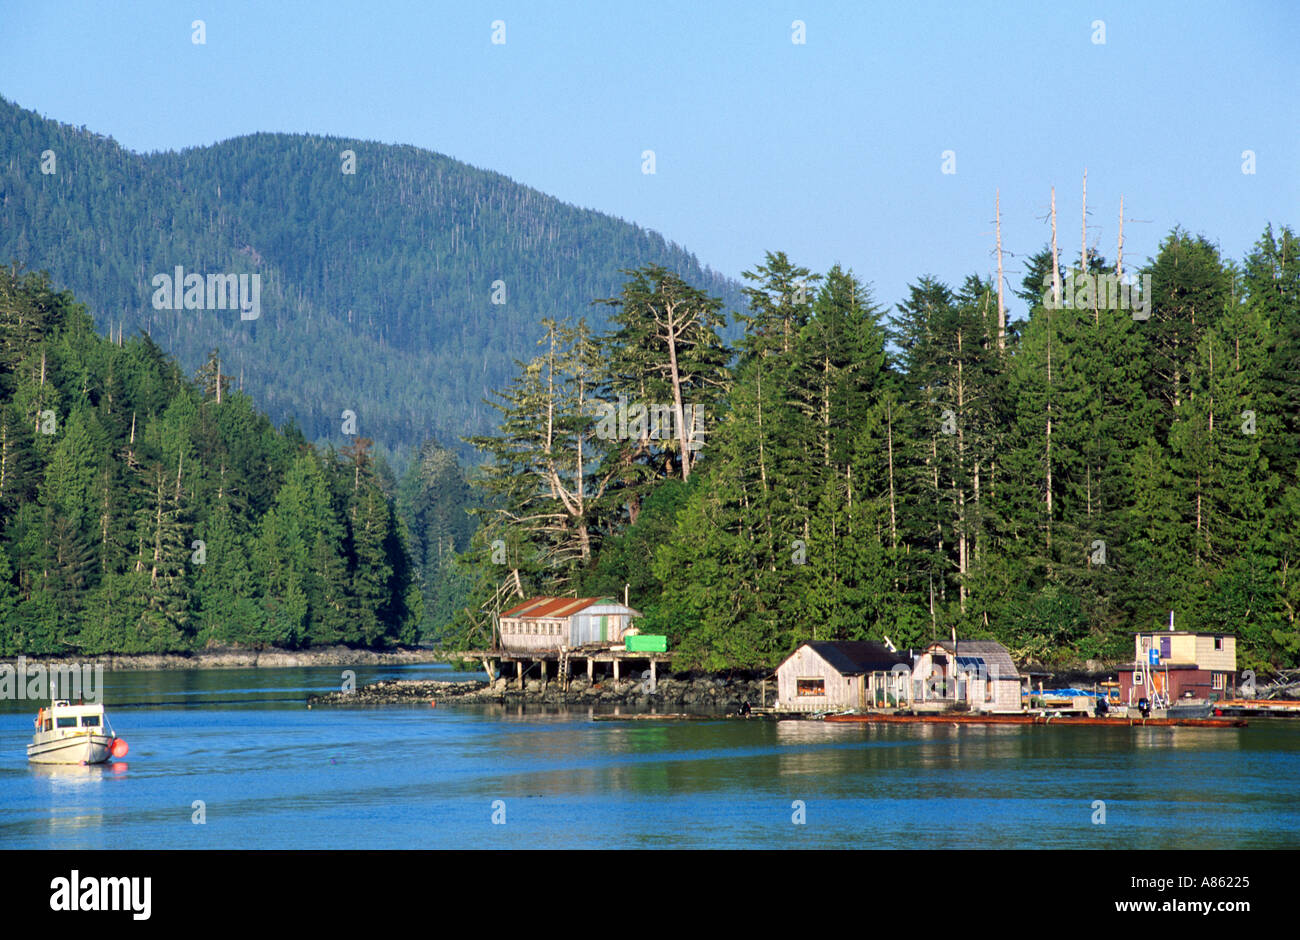 Vancouver Island Rural Land